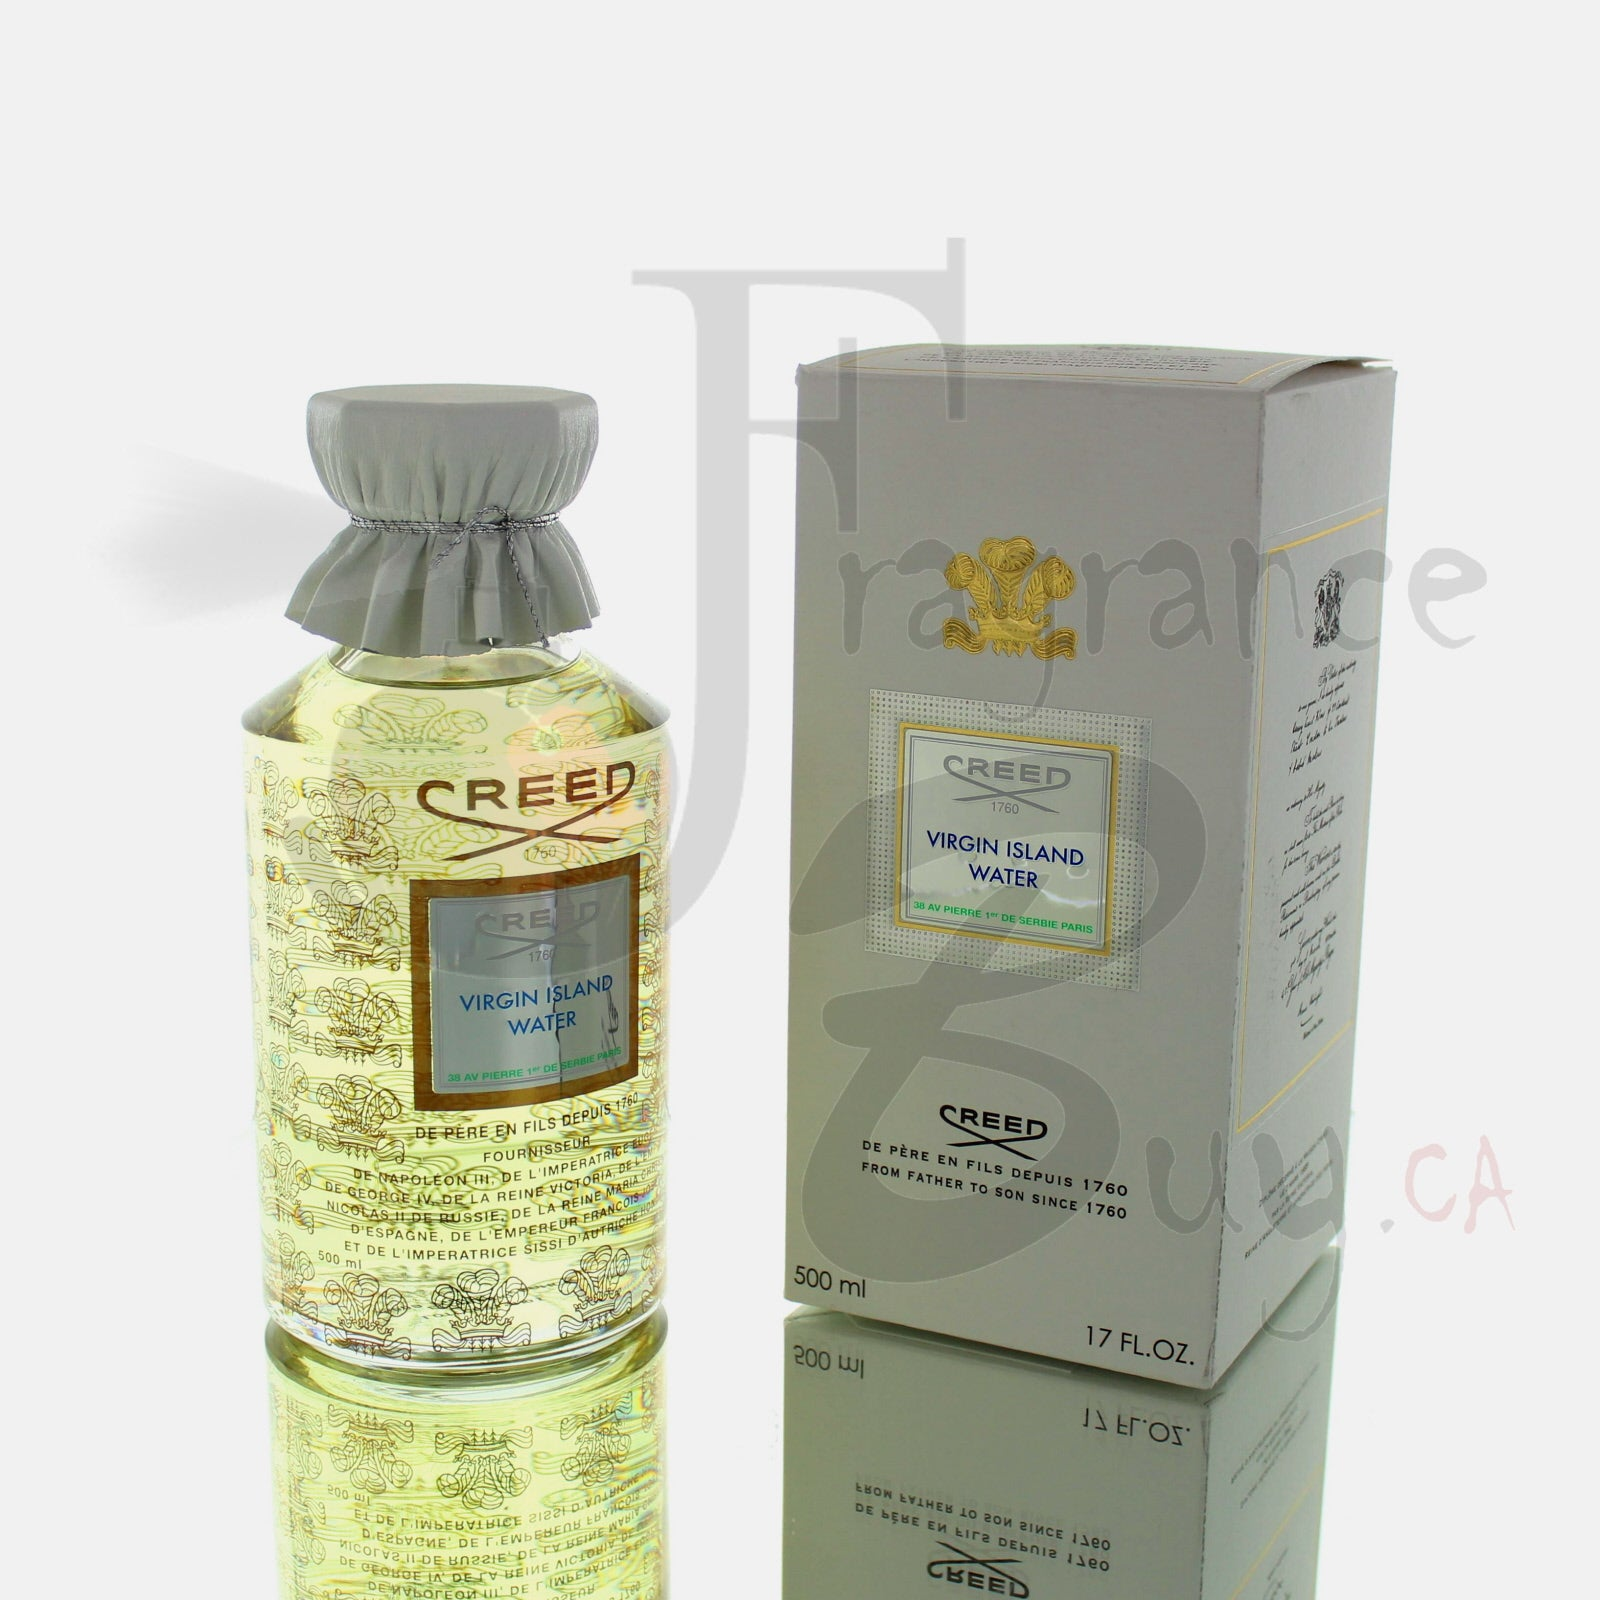 Creed Virgin Island Water Fragrance